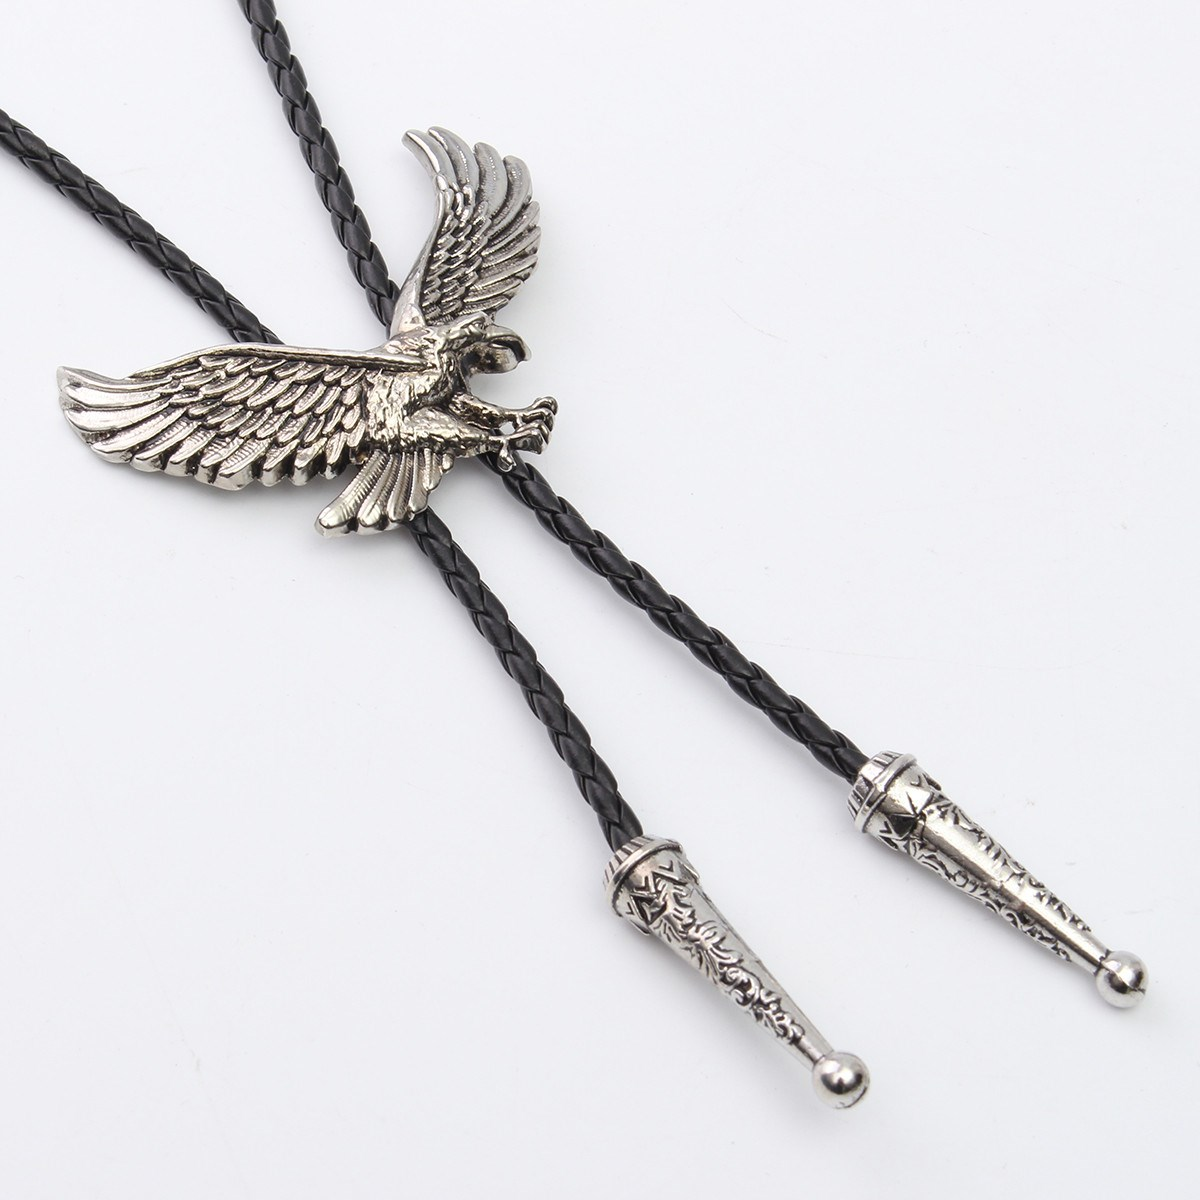 Apparel Accessories Fashion Indian Eagle Pendant Bolo Tie Western Cowboy Bootlace Animal Necktie Tie Necklace Jewelry For Men Syt9388 Be Friendly In Use